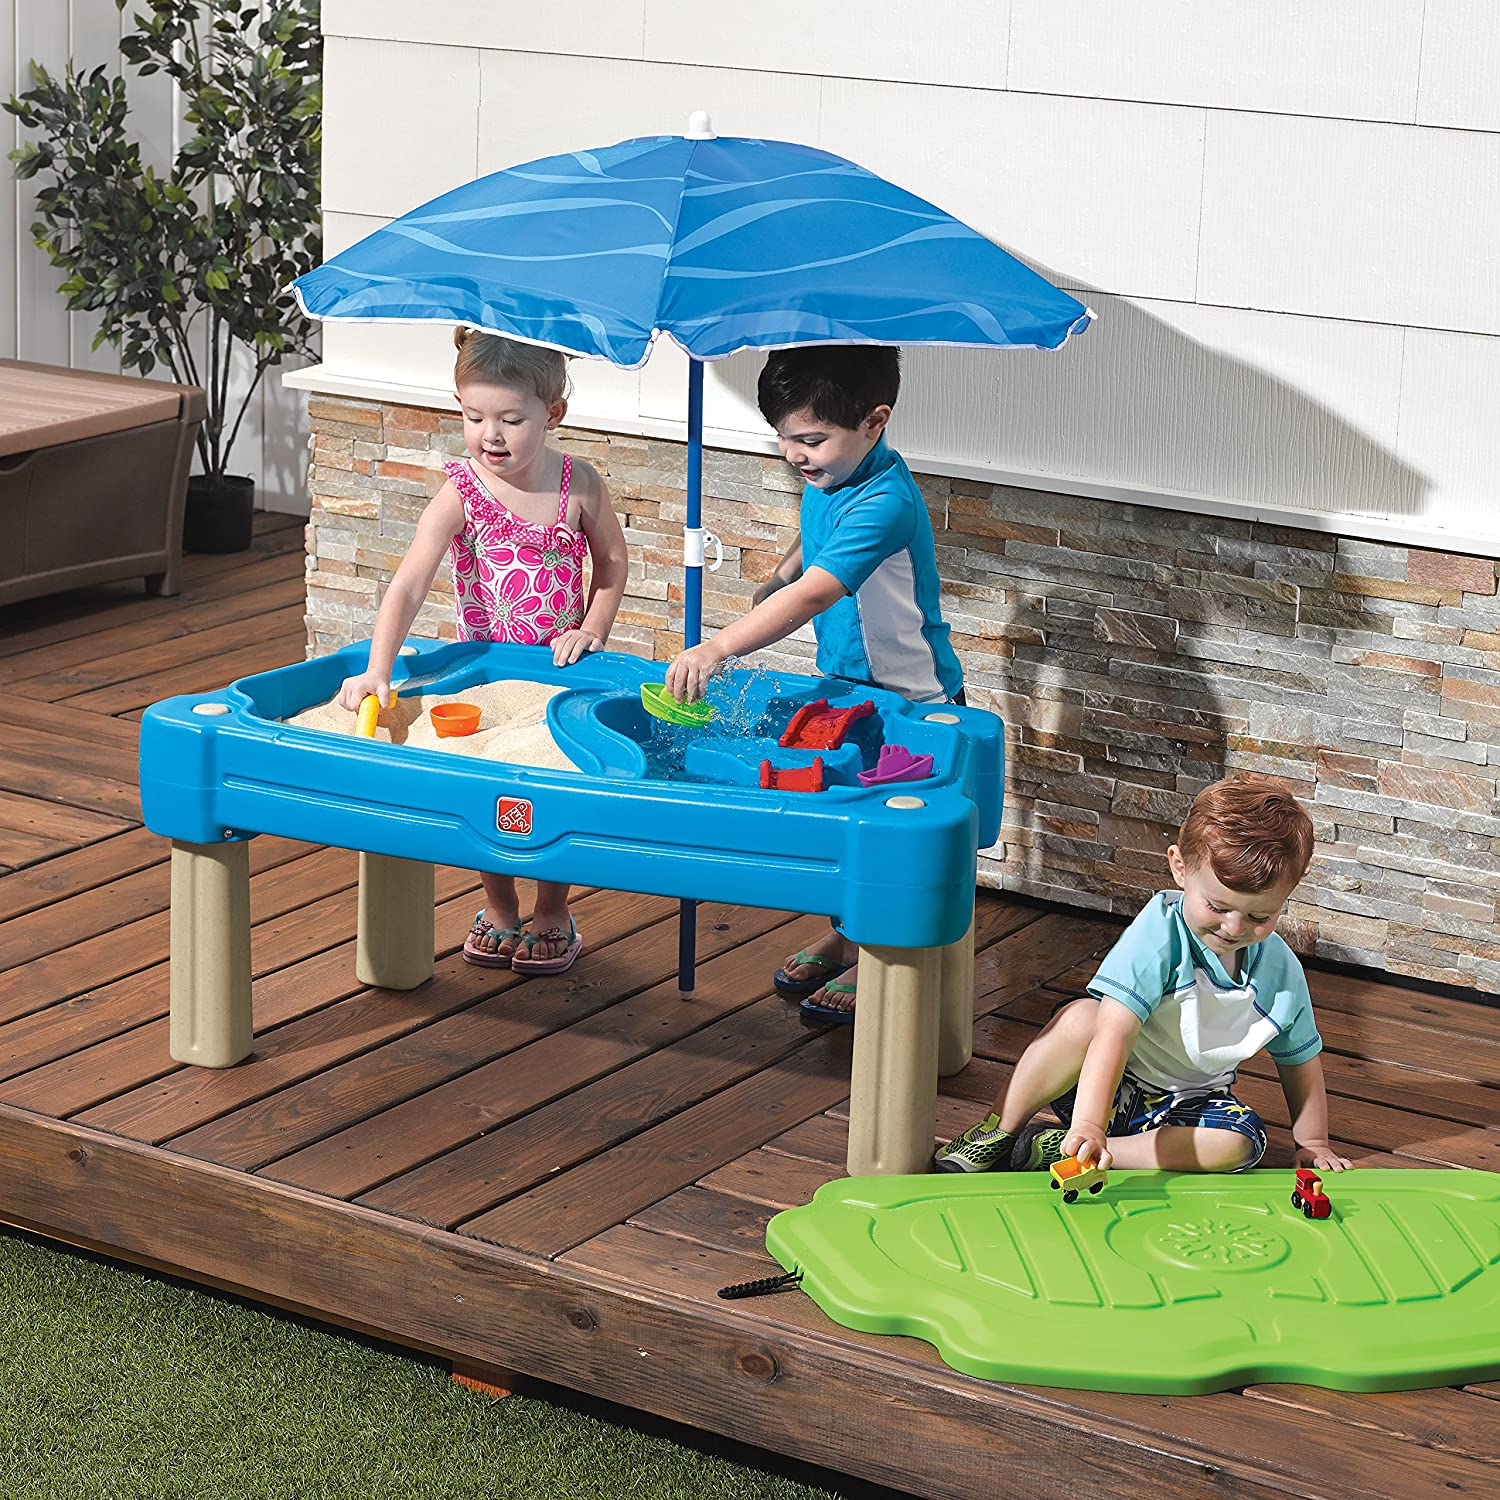 Amazon Step2 Cascading Cove Sand and Water Table Toys & Games